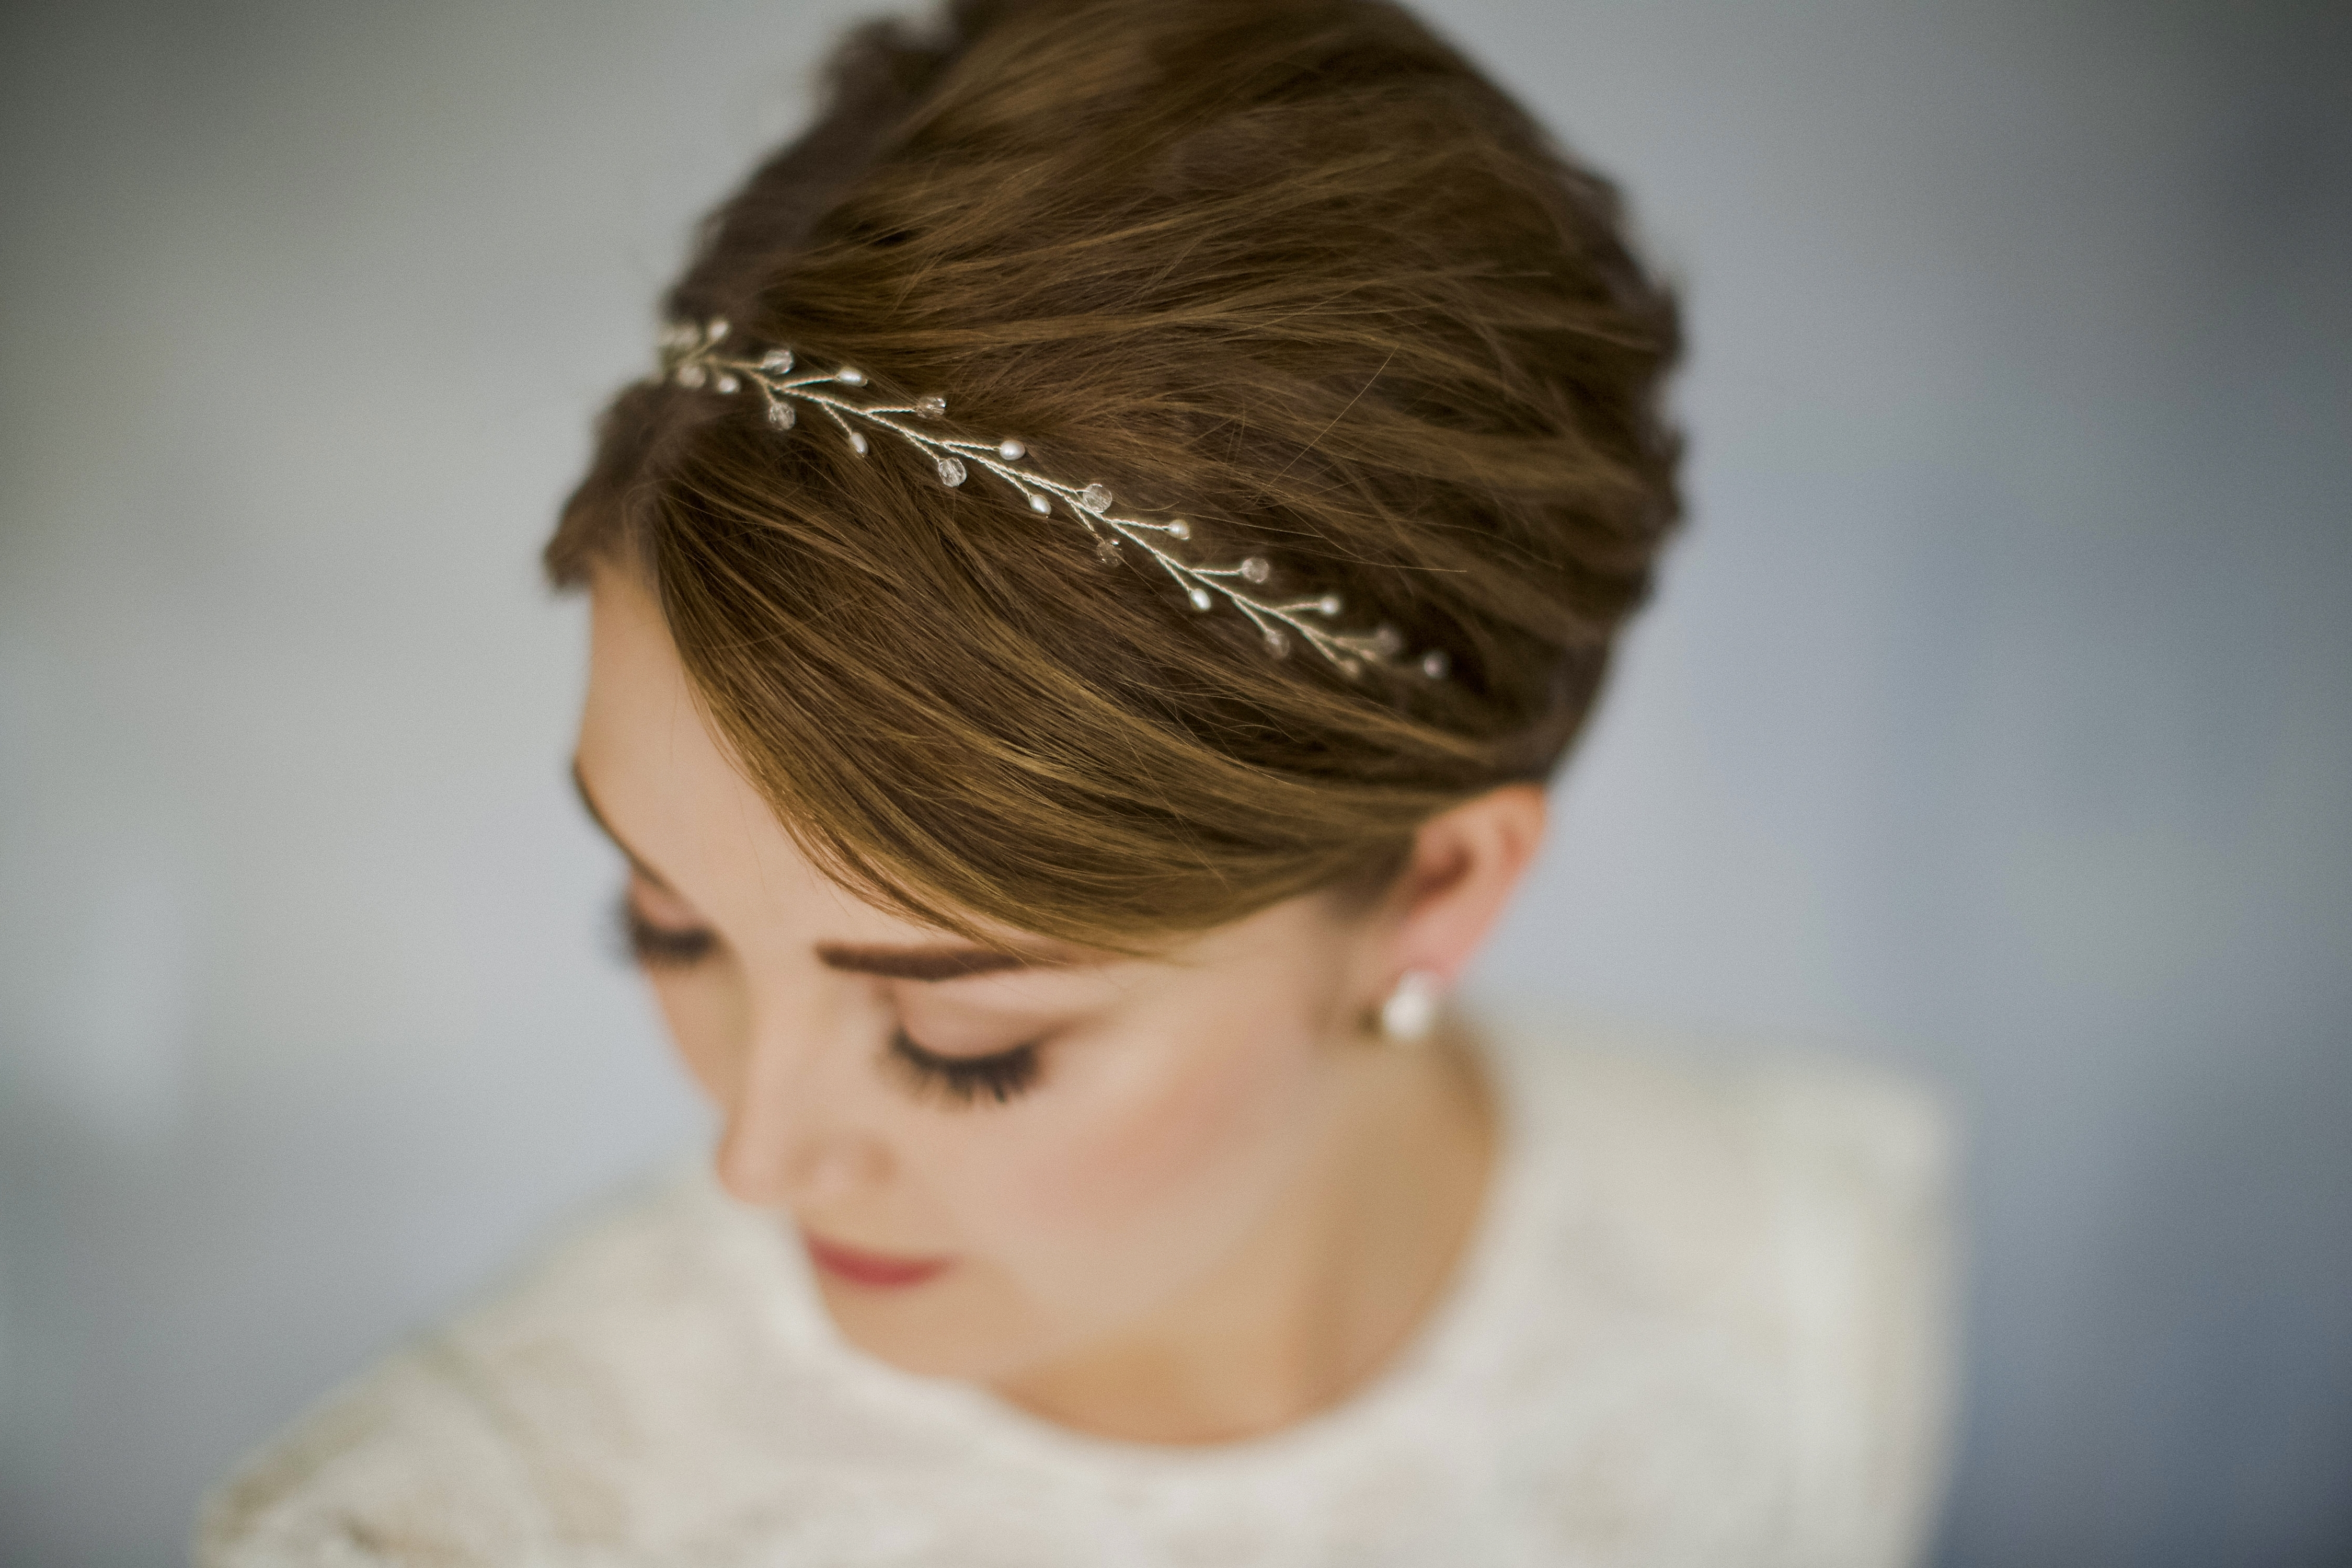 Recent Wedding Hairstyles With Accessories In How To Style Wedding Hair Accessories With Short Hair (View 11 of 15)